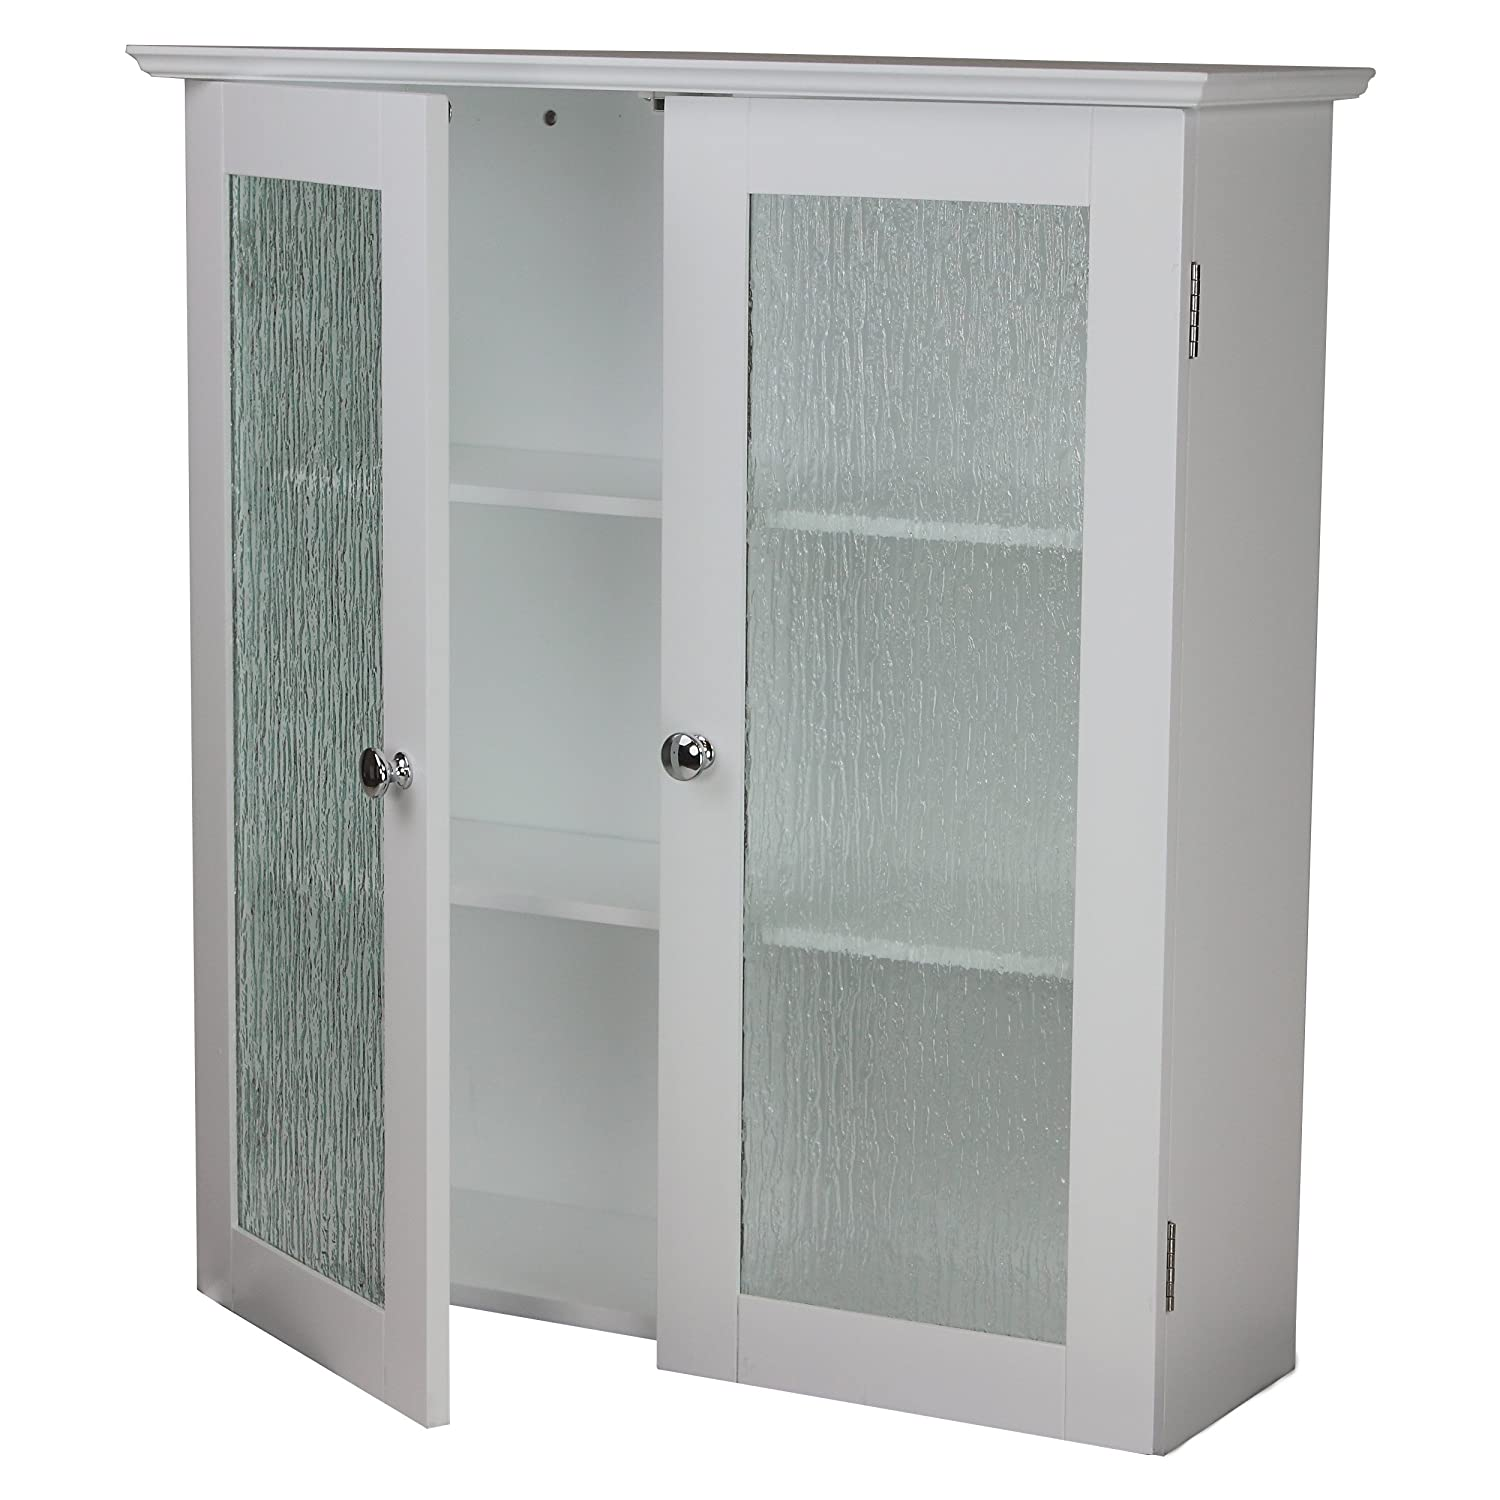 Amazon.com: Elegant Home Fashions Rain Collection Wall Cabinet ...